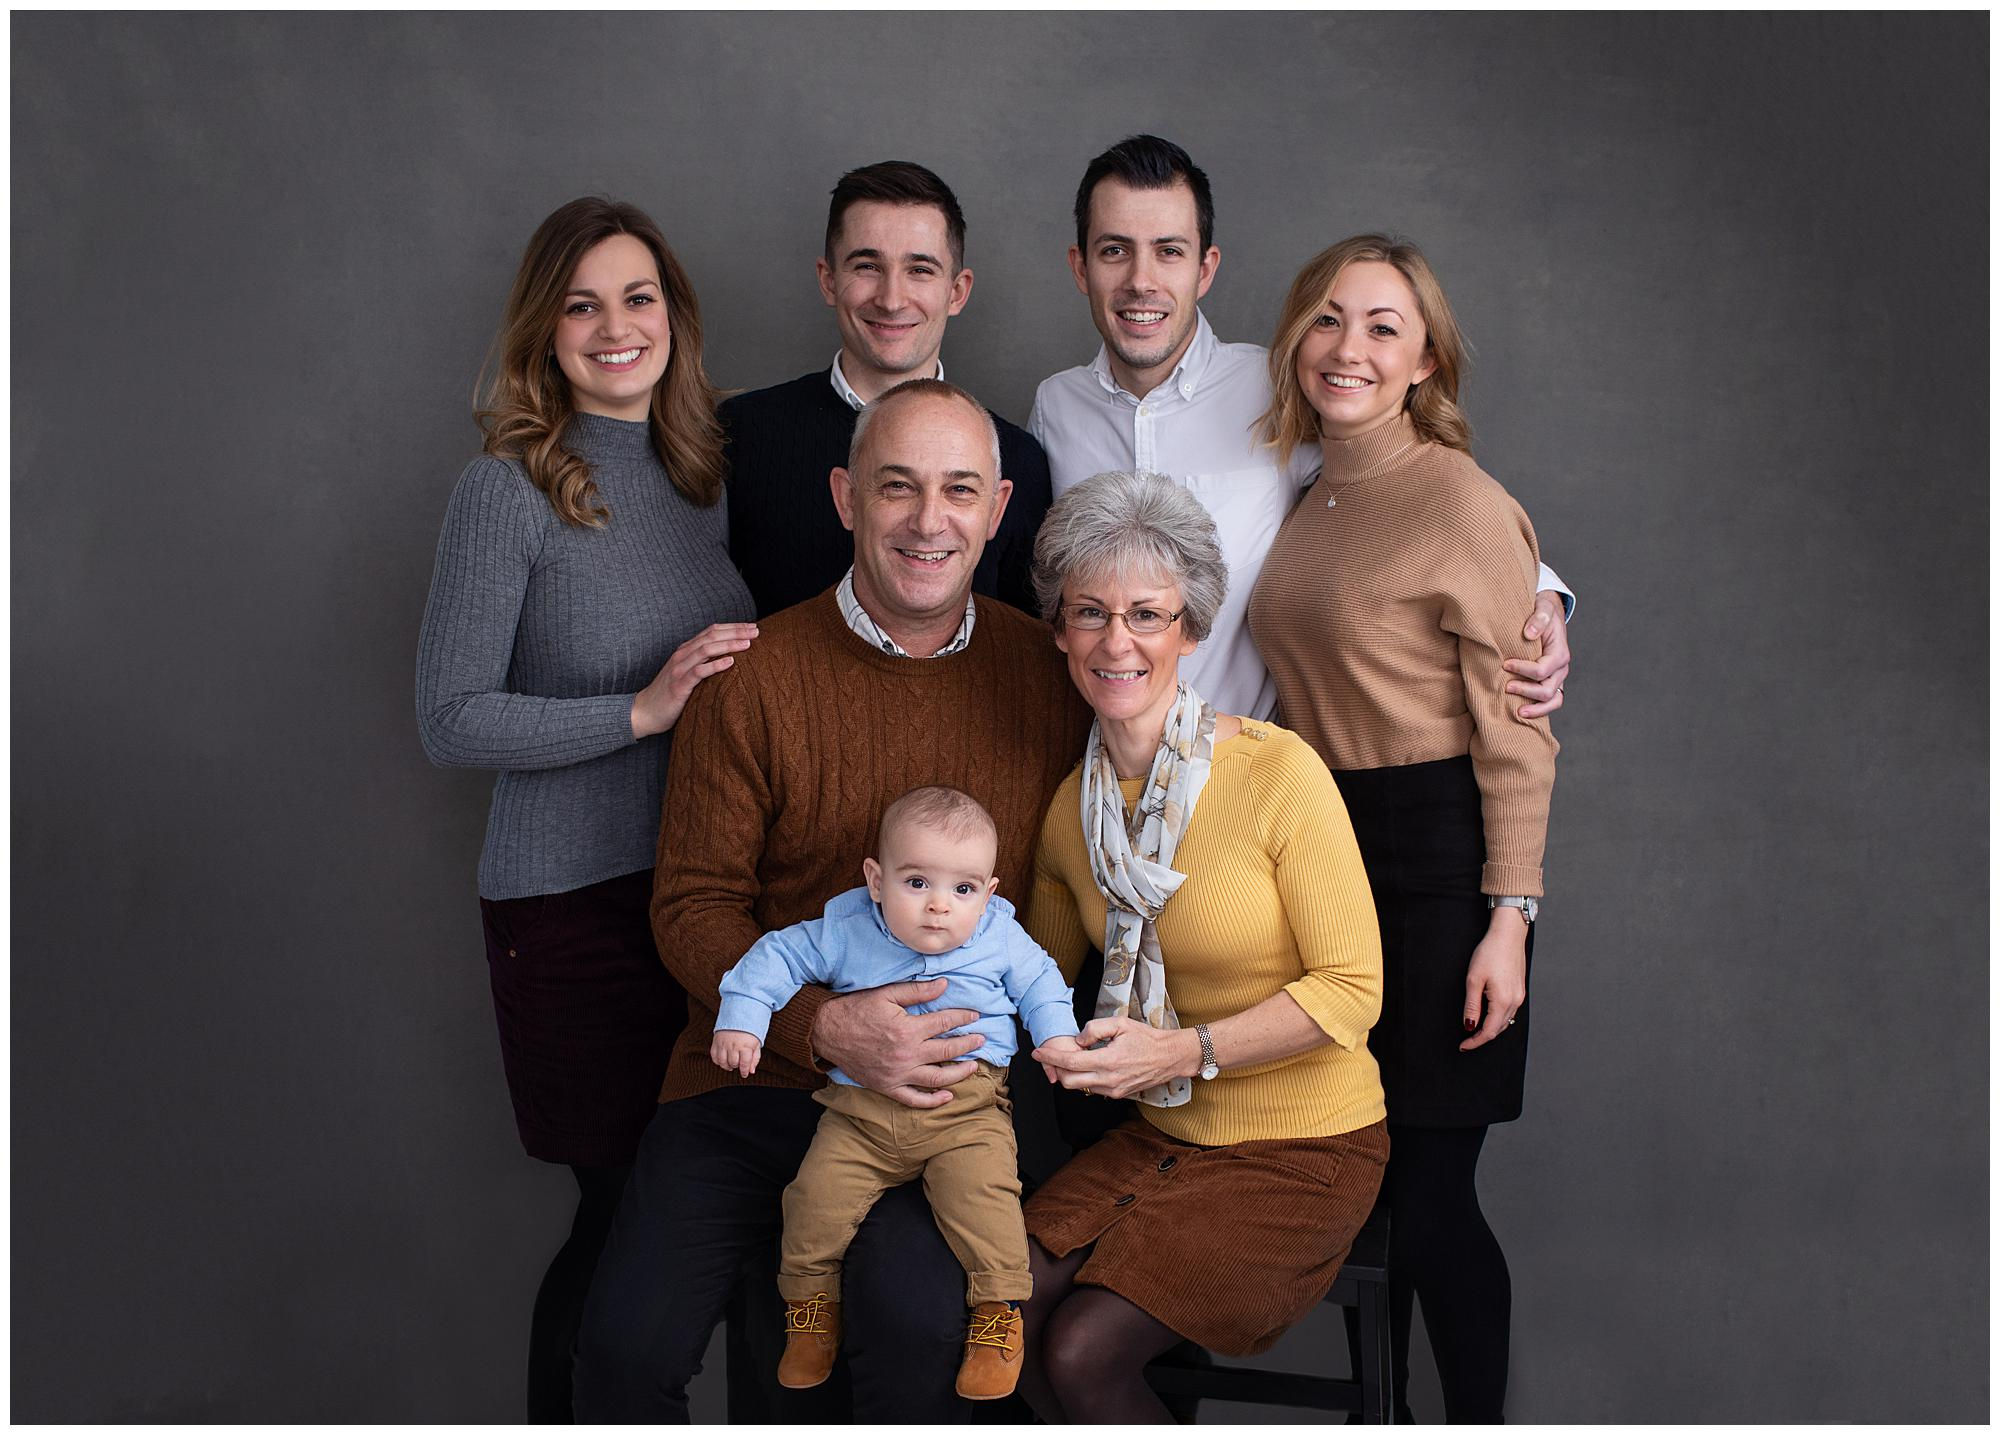 Extended Family Portrait on a grey background